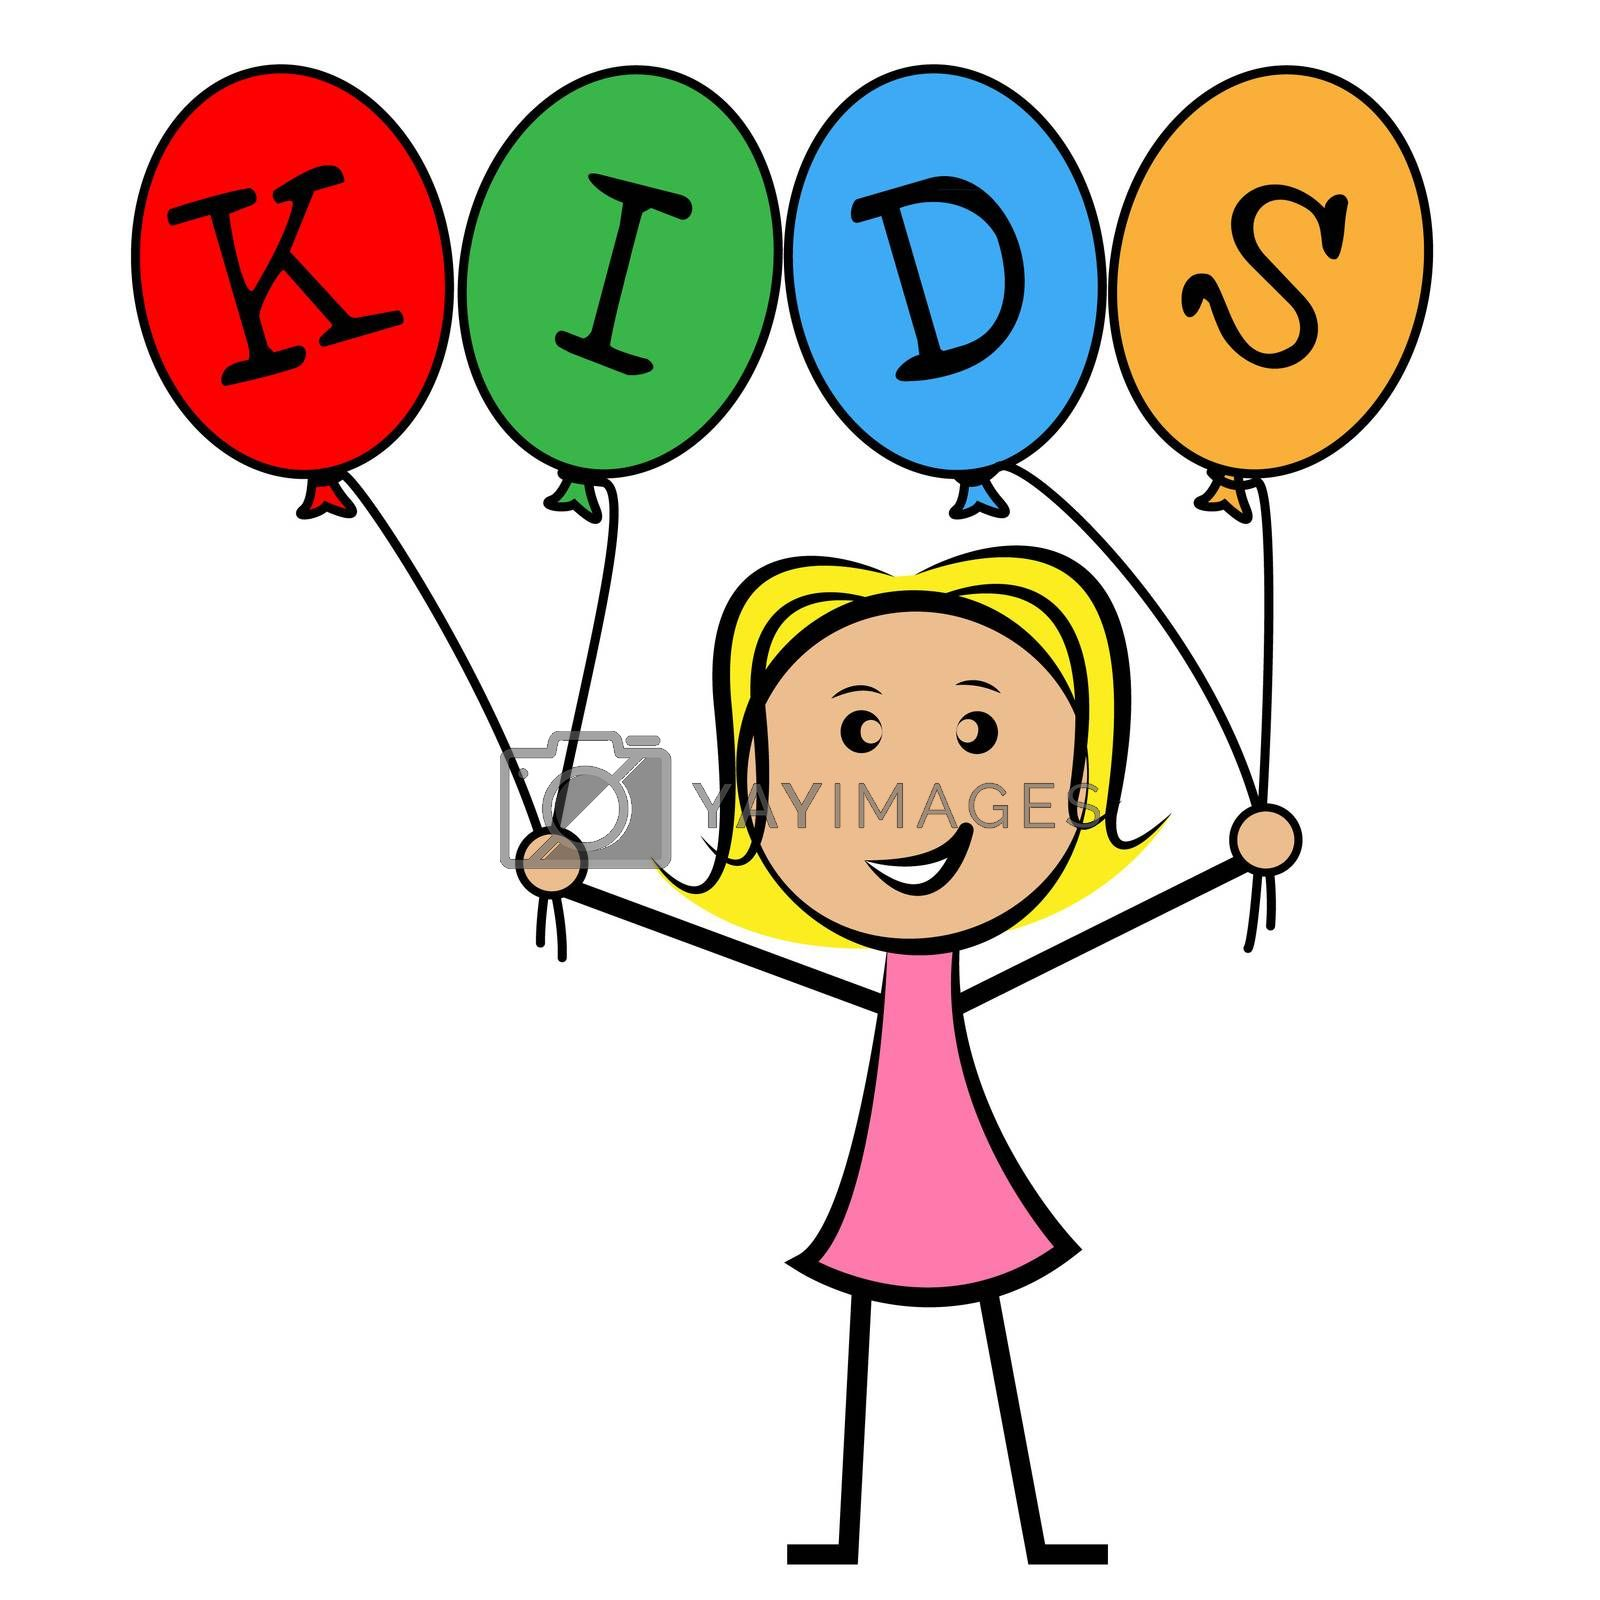 Kids Balloons Means Young Woman And Youngsters by stuartmiles